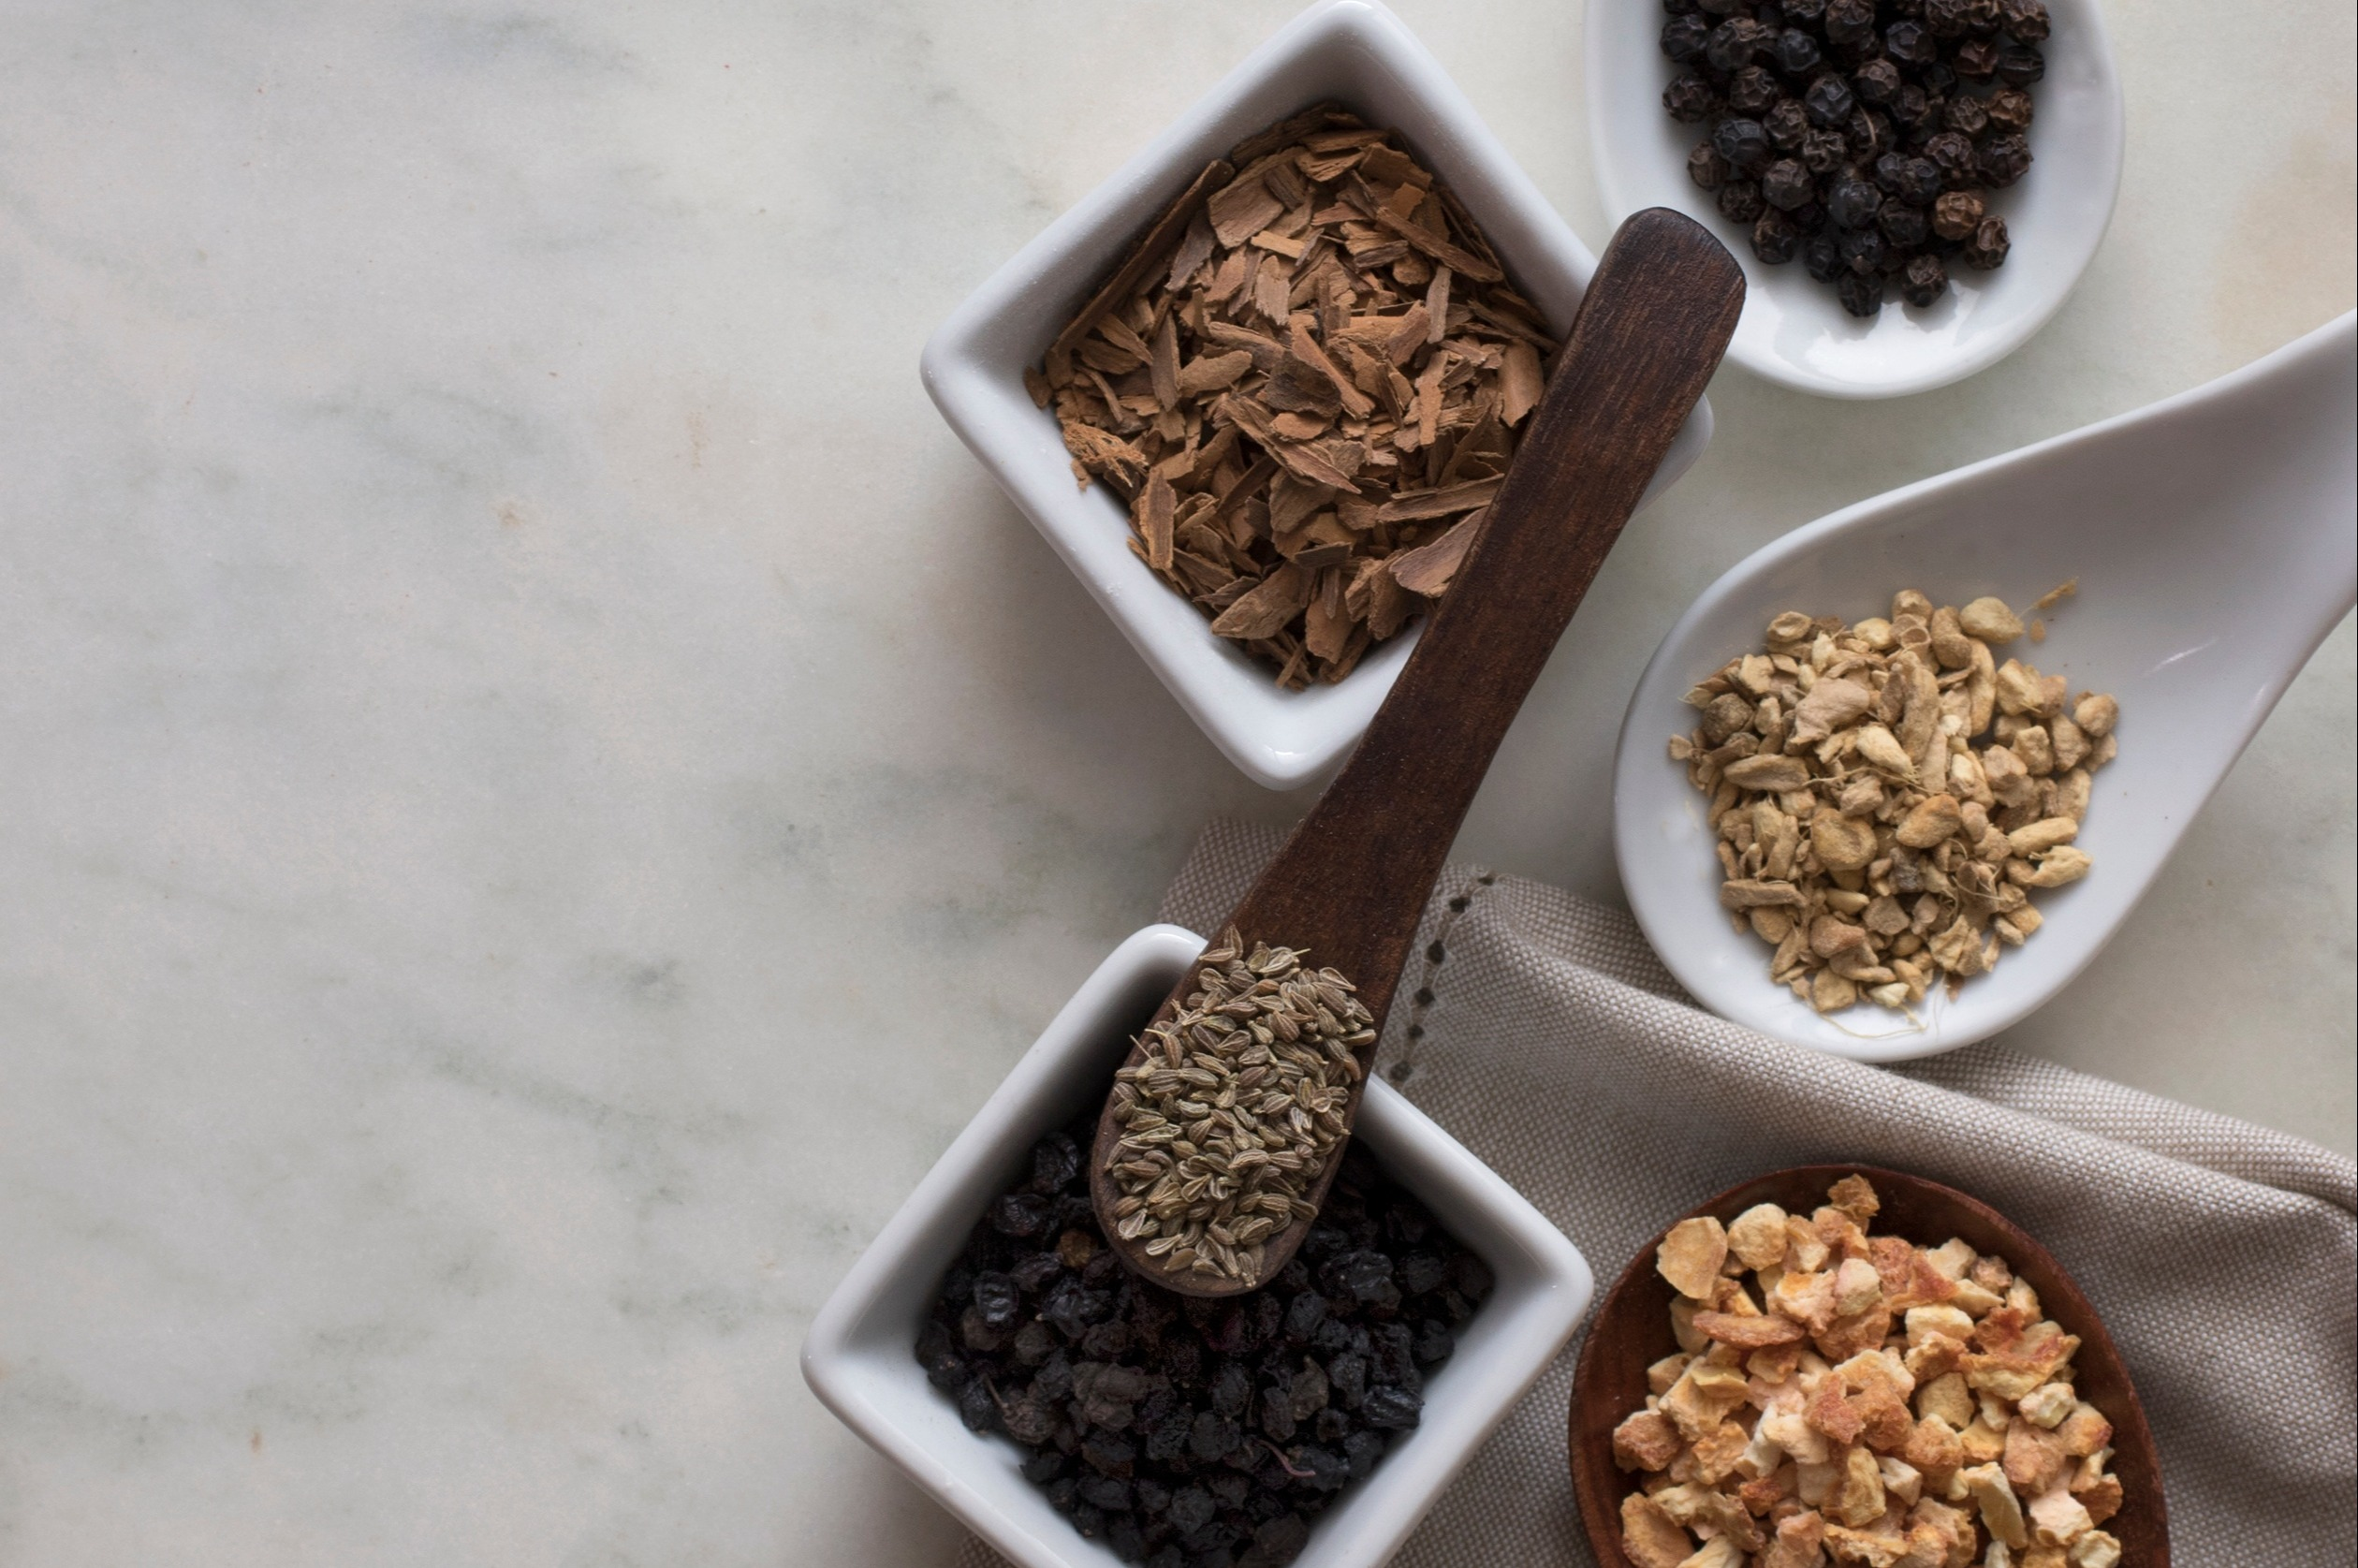 Herbs and spices come together to make delicious tea blends for any occasion. Seeds, dried berries, citrus peel, and aromatic roots can all be incorporated into tea blends for health and happiness.